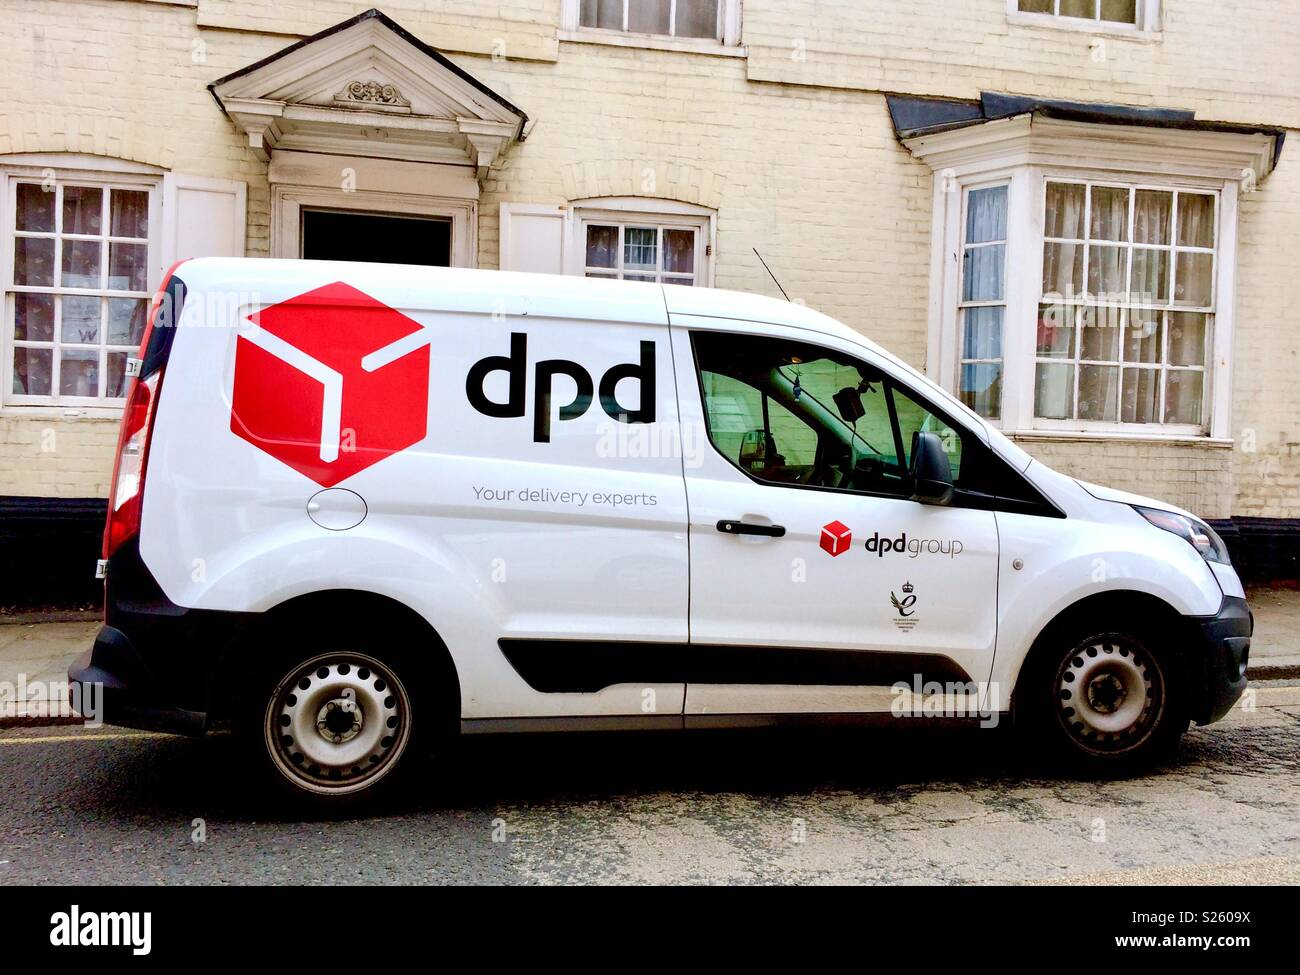 Dpd Delivery Van Stock Photos Amp Dpd Delivery Van Stock